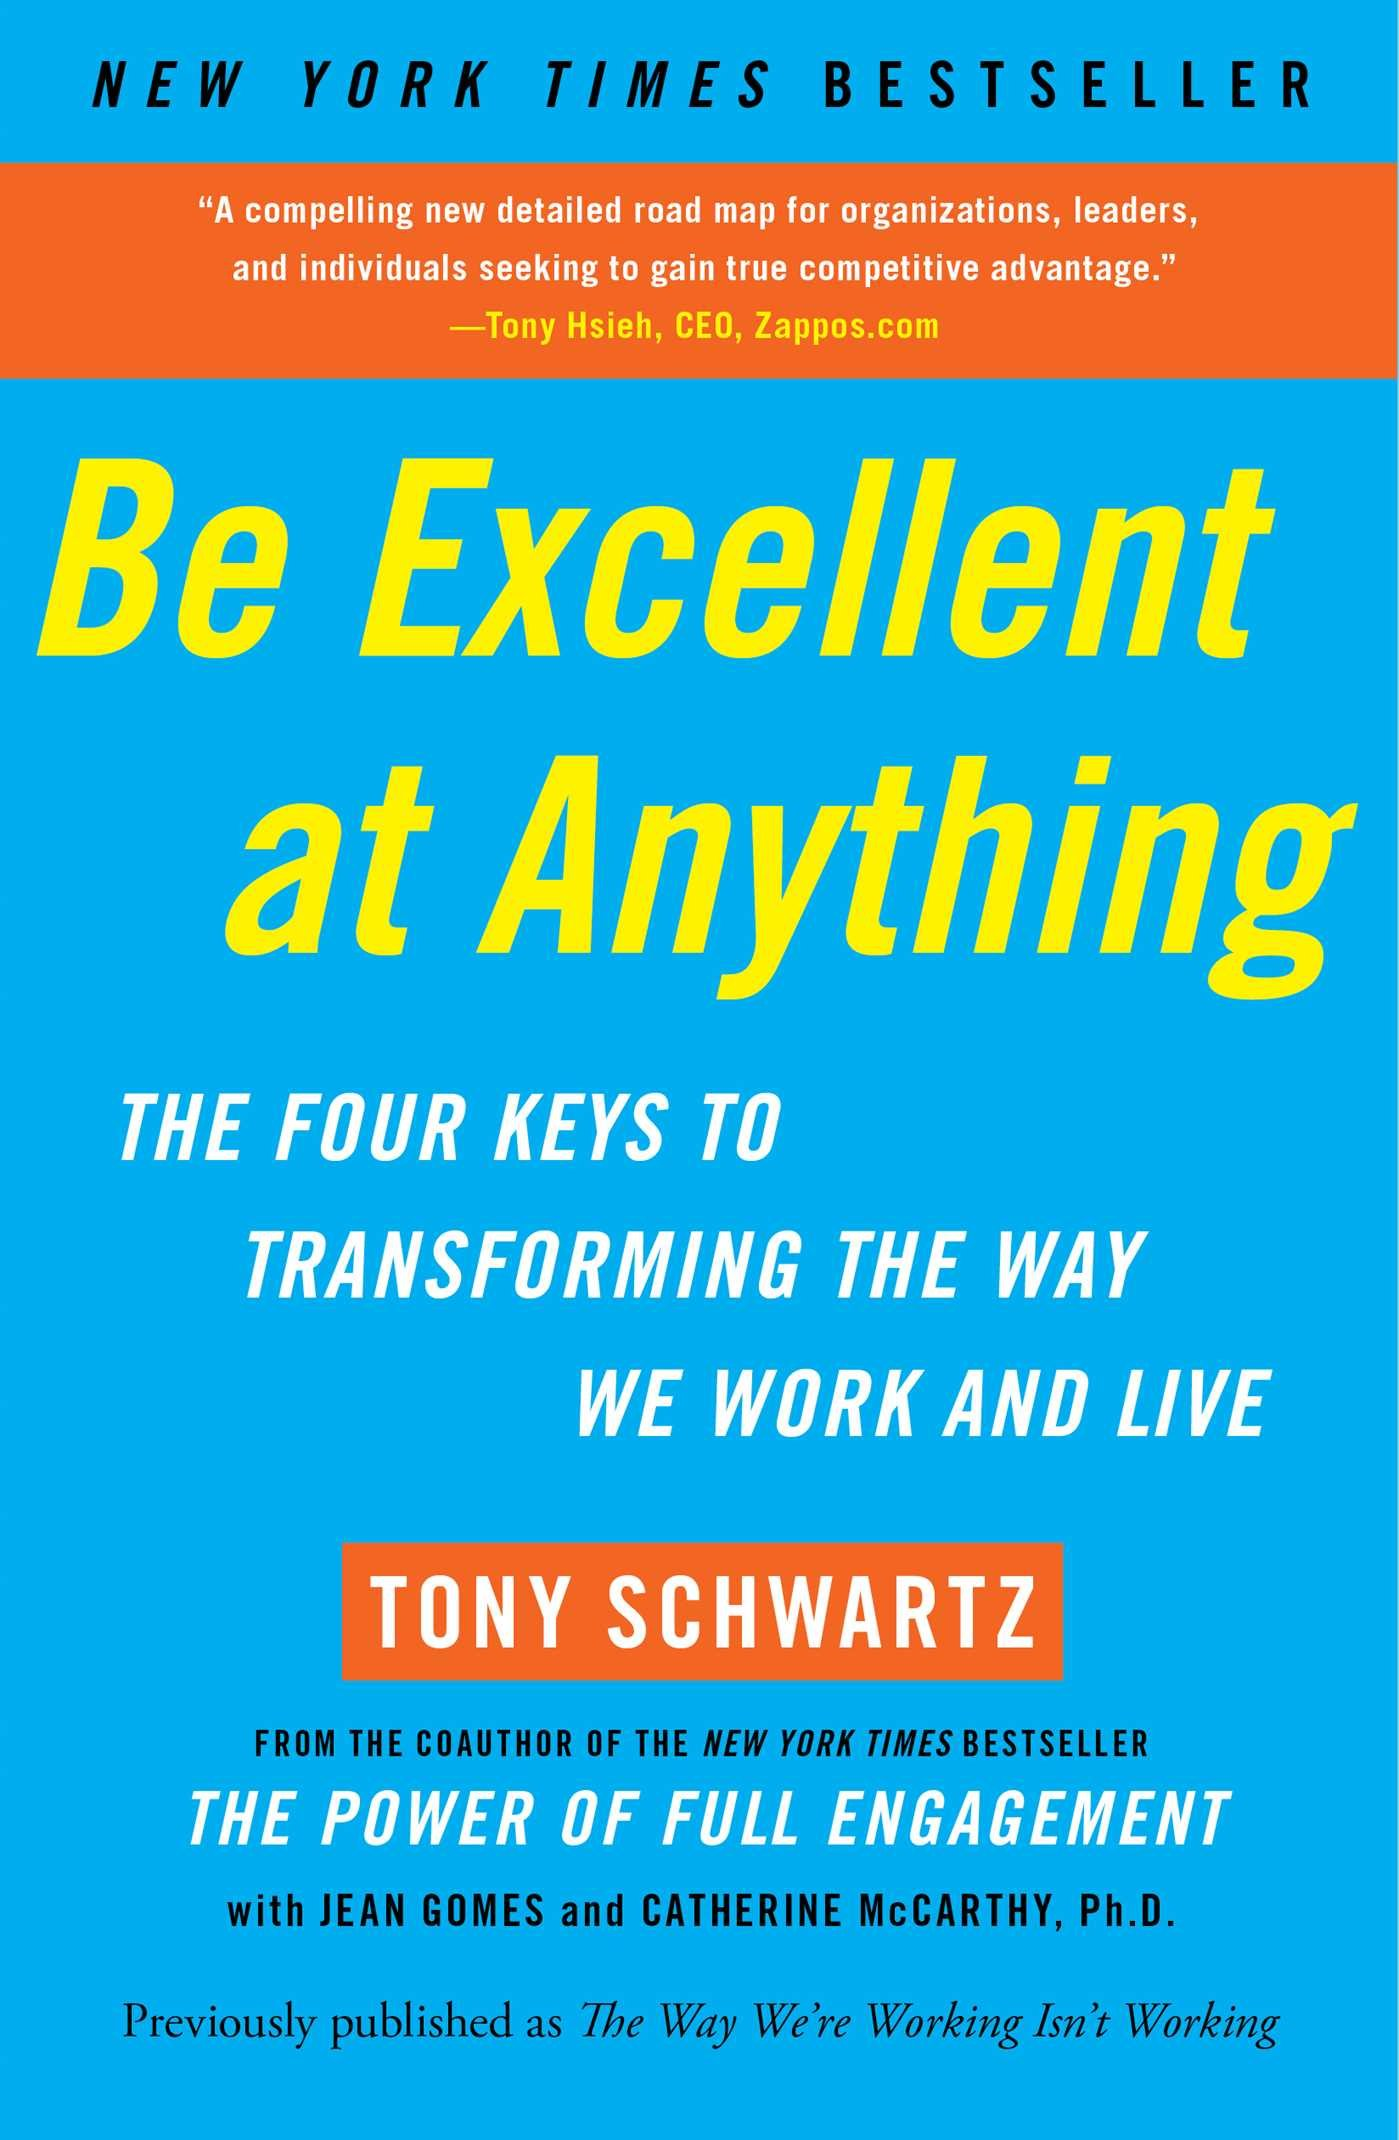 Be Excellent at Anything Summary